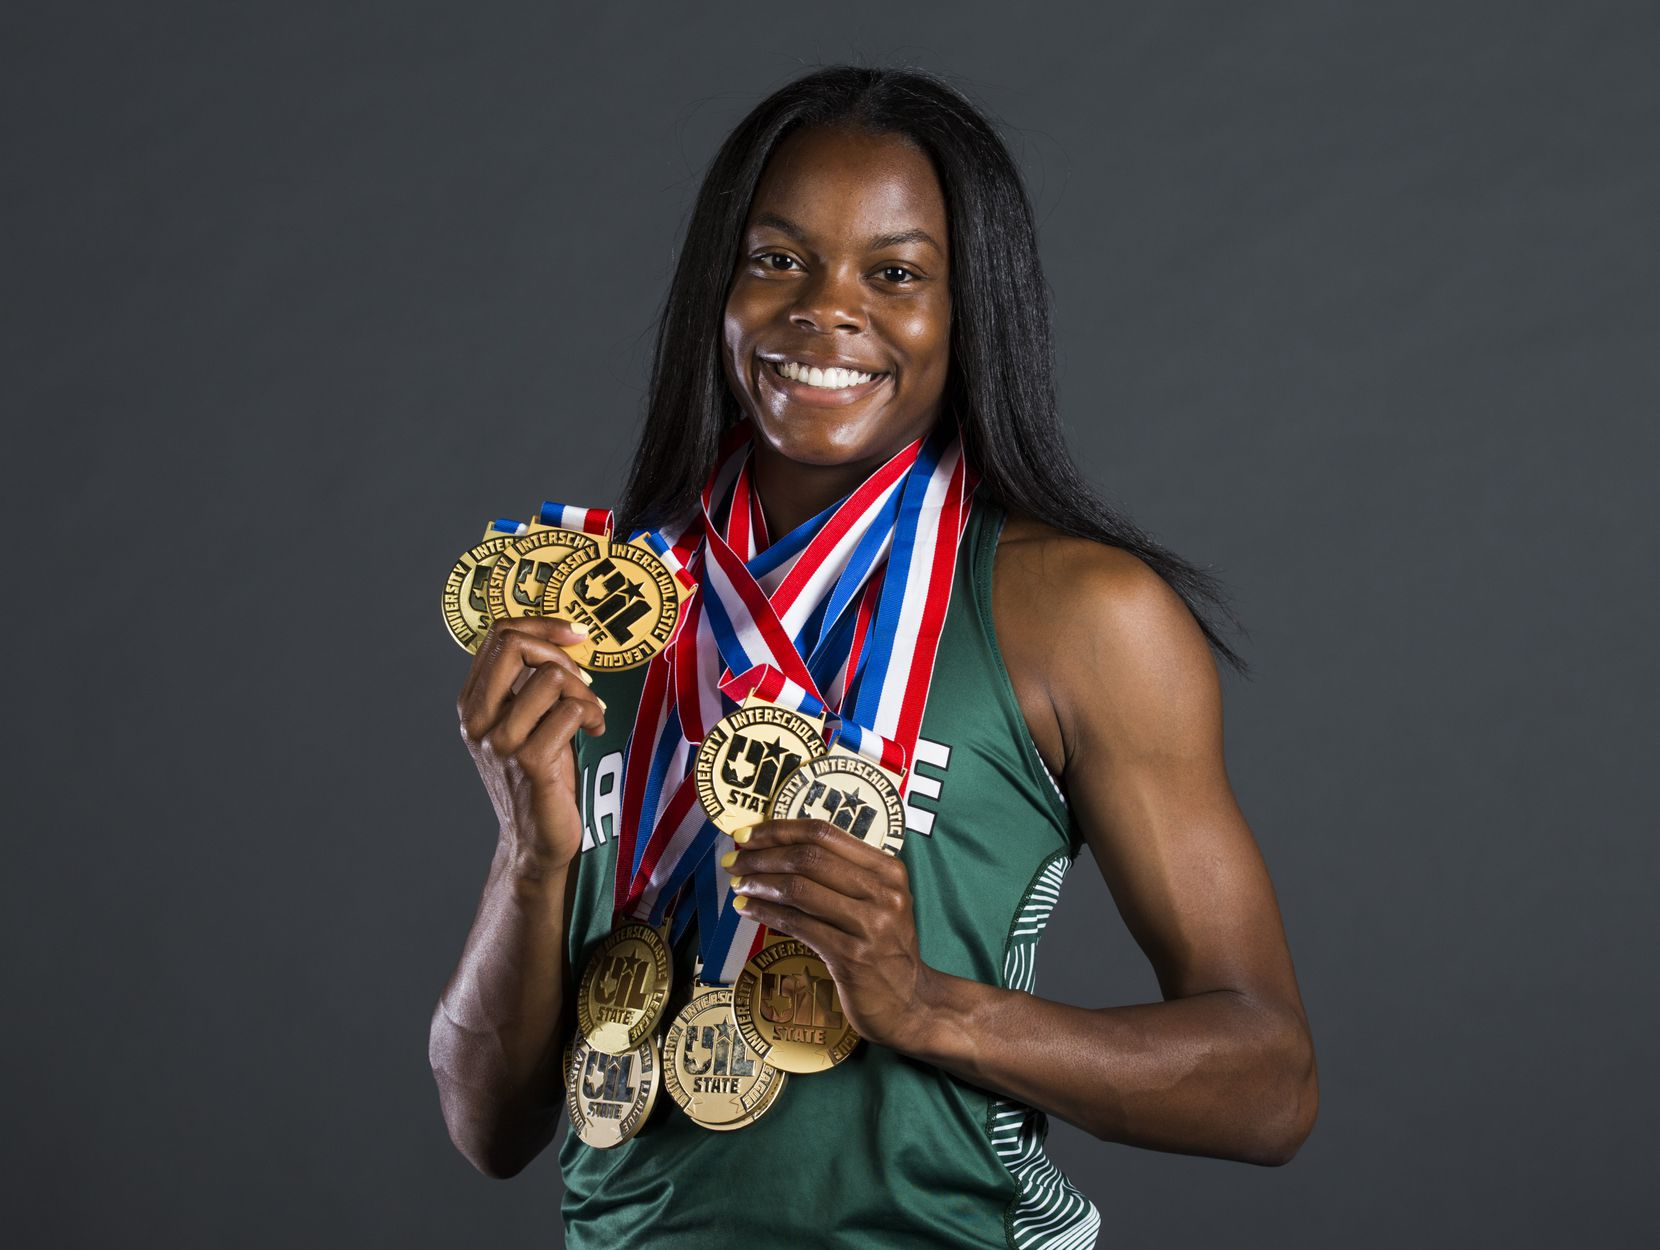 Mansfield Lake Ridge senior Jasmine Moore poses for a portrait at The Dallas Morning News on Friday, May 24, 2019. Moore won UIL Class 6A state titles in long jump and triple jump. In triple jump, she broke the state and national high school record. She's won 14 UIL state medals in her high school career.